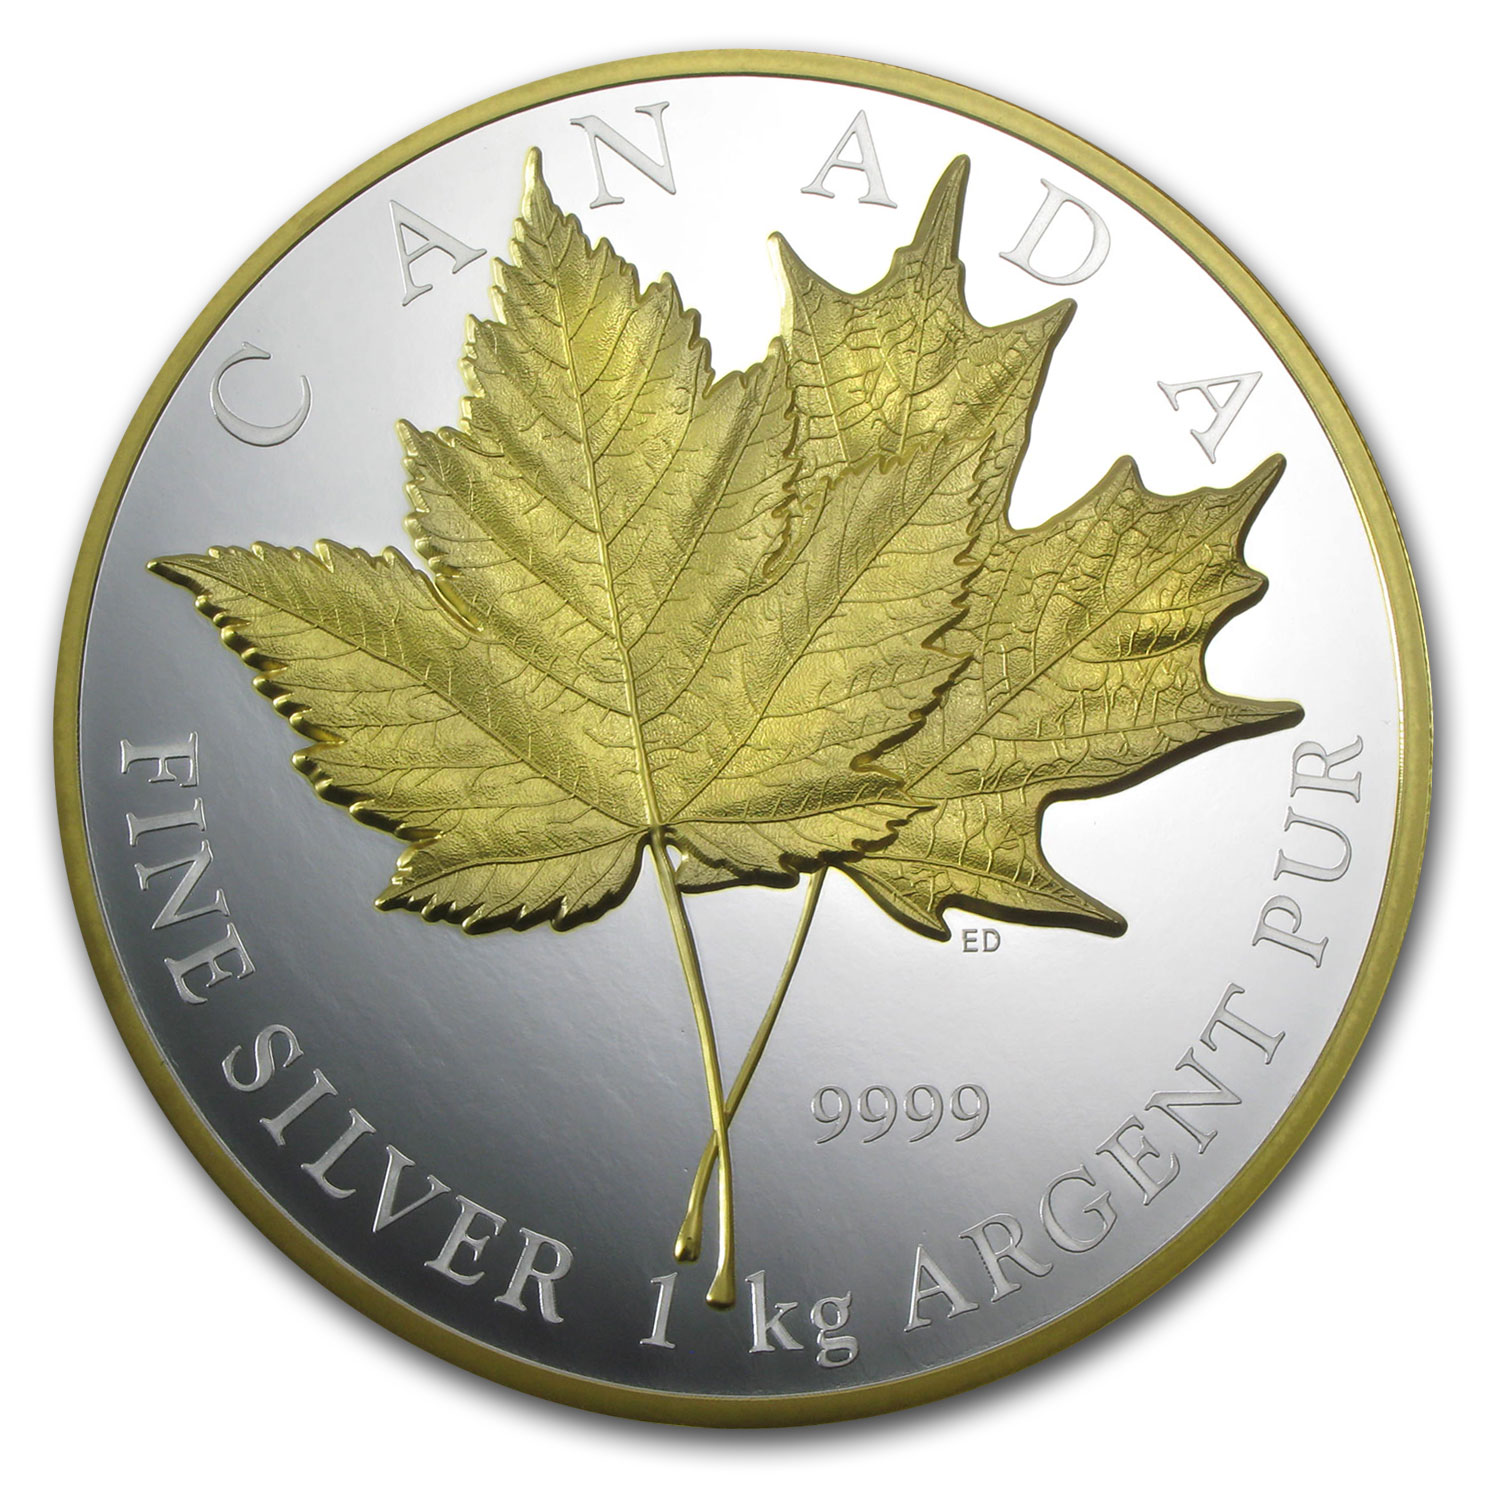 2013 Canada 1 kilo Silver $250 Maple Leaf Forever (Gilded)